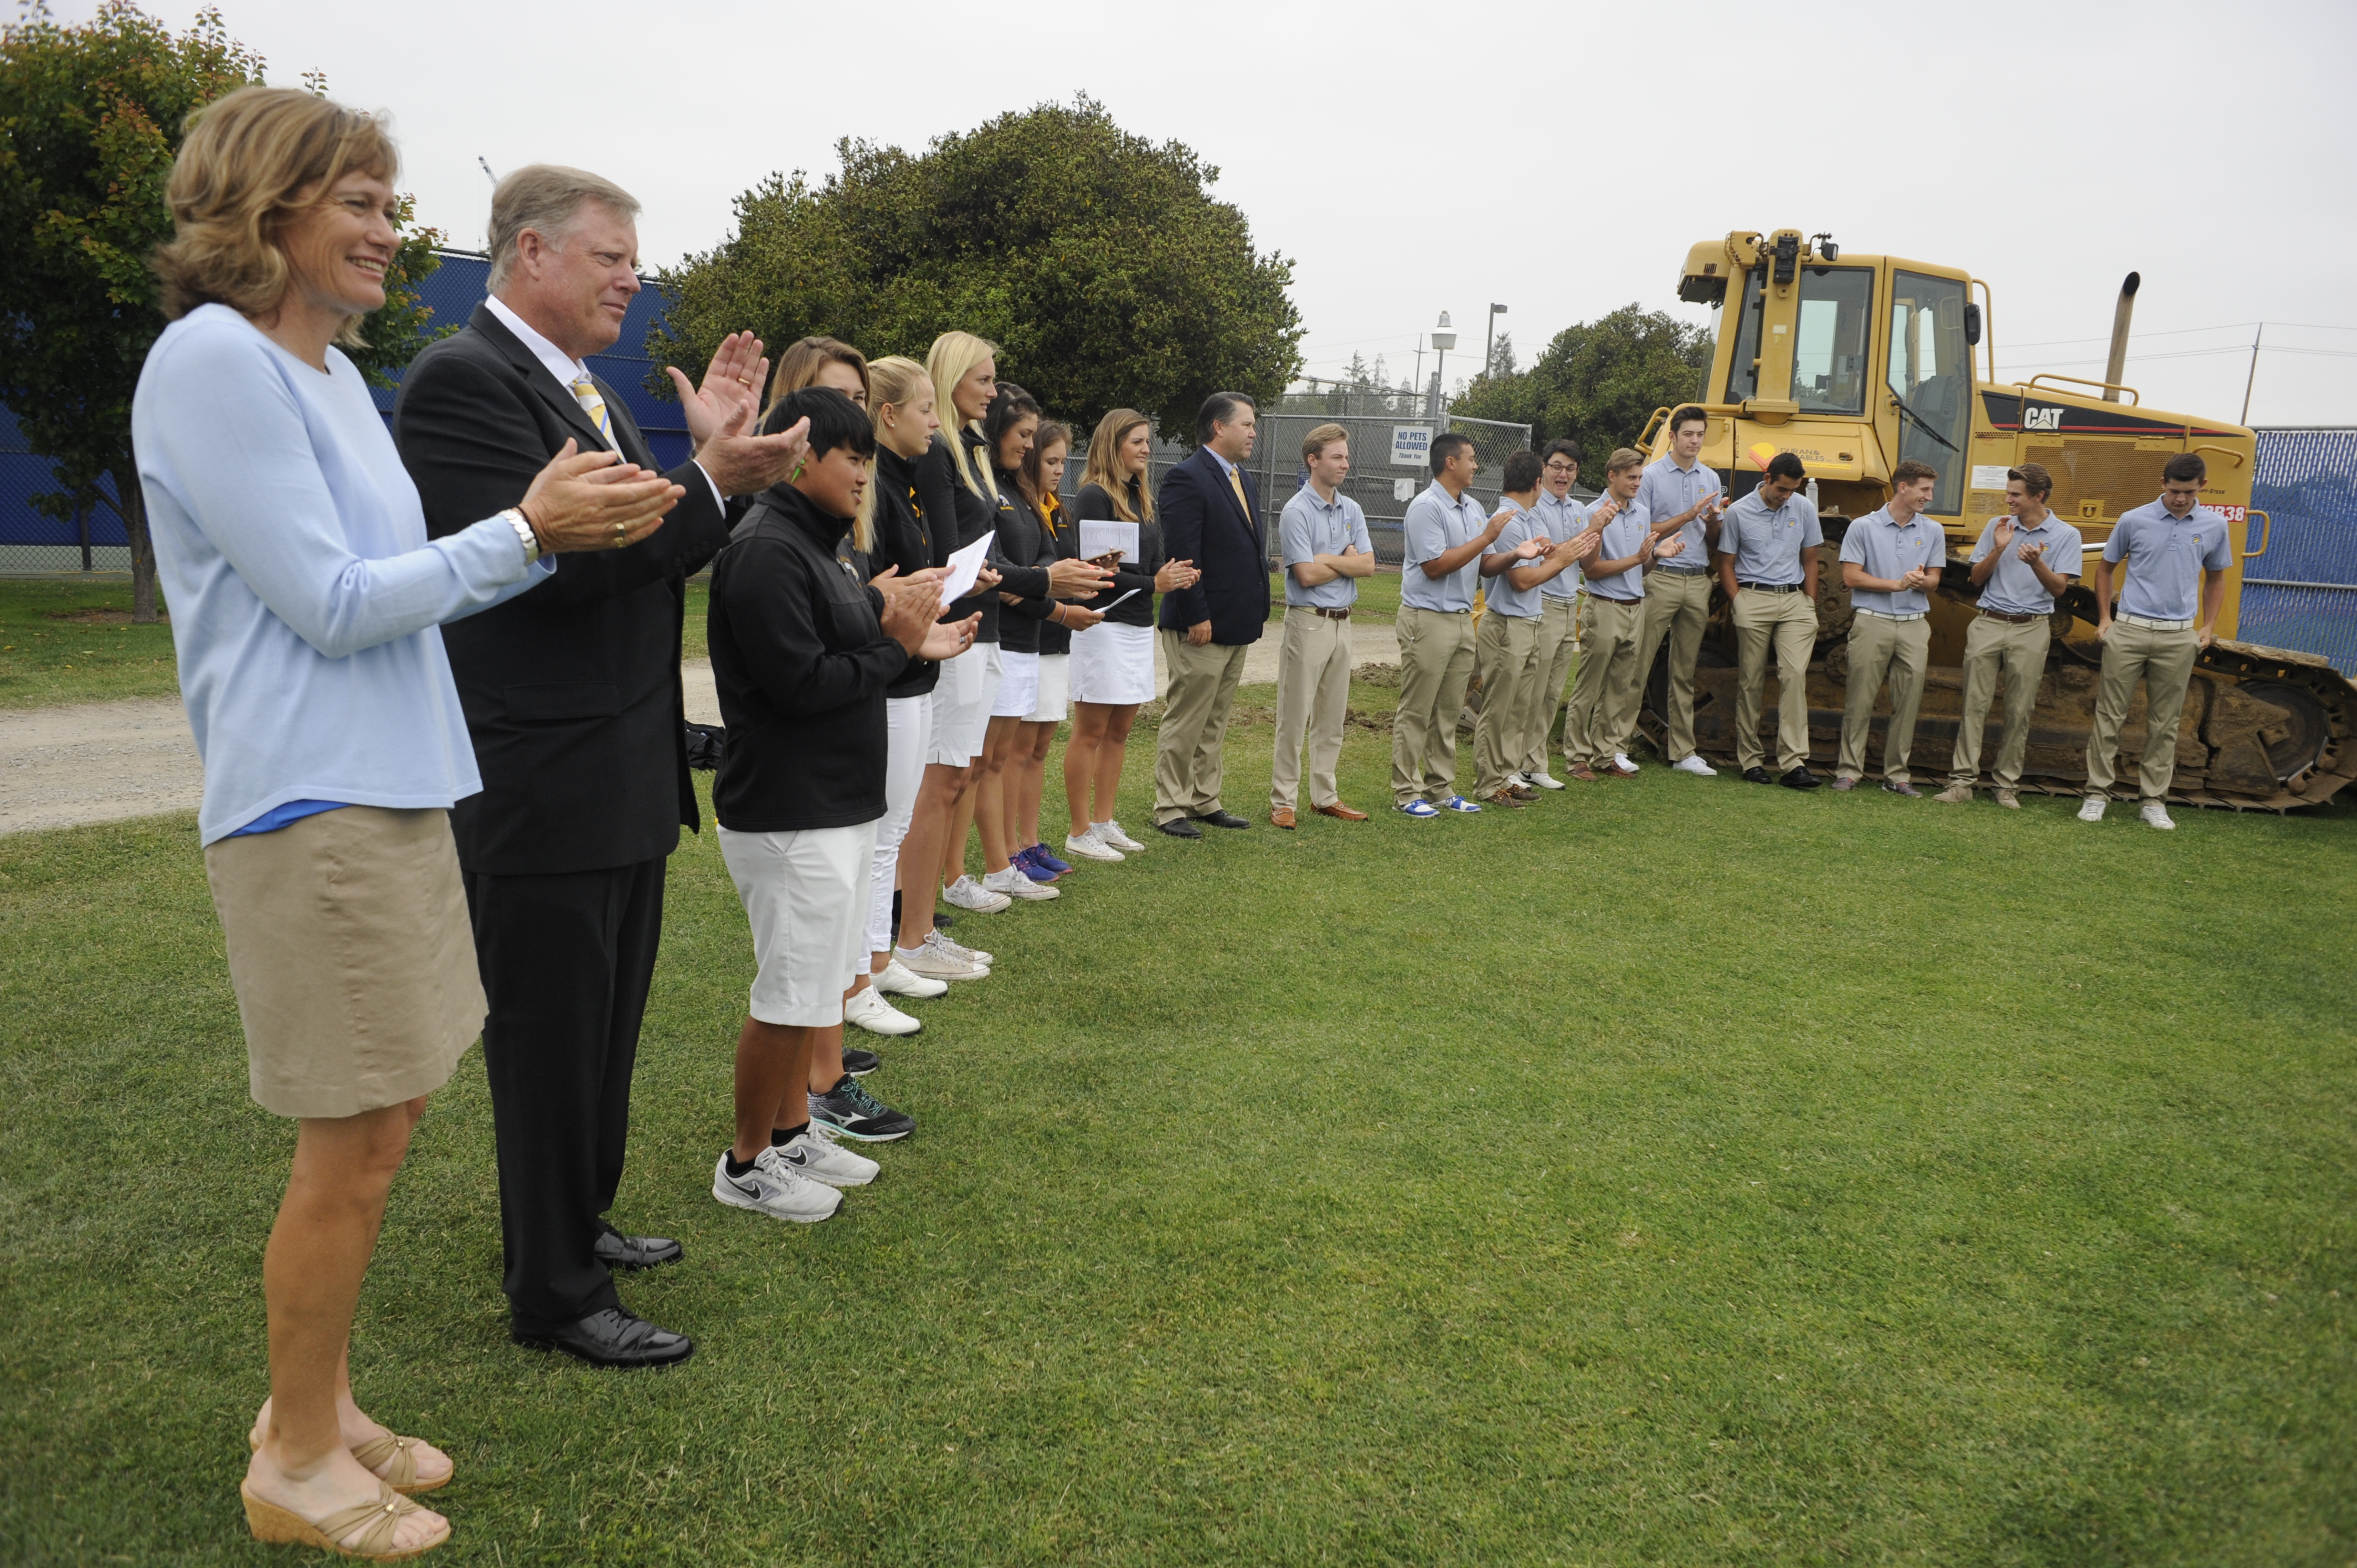 The men's and women's golf teams at the groundbreaking of the Spartan Golf Complex in May 2016 (Photo by: Neal Waters, '07 Geography, '16 MS Mass Communications)